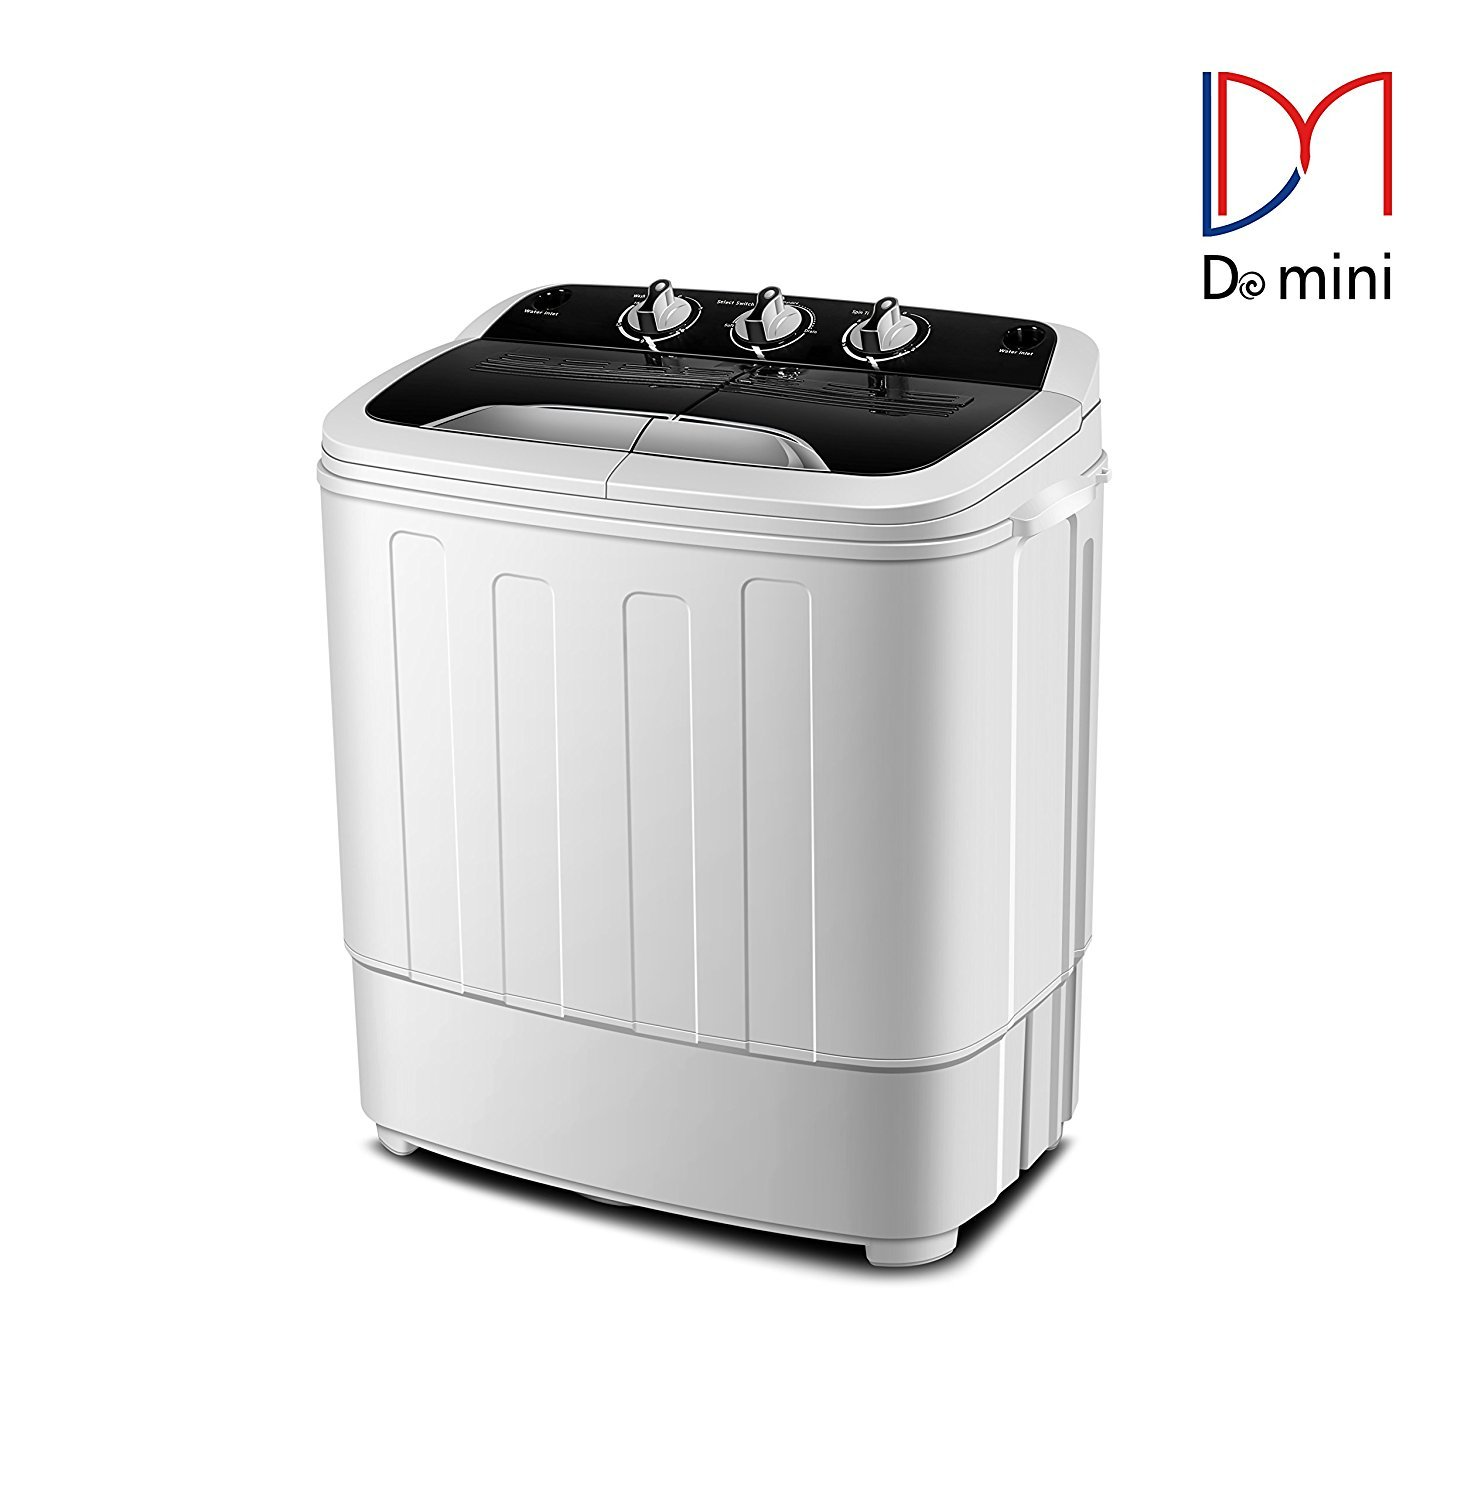 How Much Water Does A Washing Machine Use >> Best RV Washer Dryer Combo - The Definitive Guide (2019 Review)